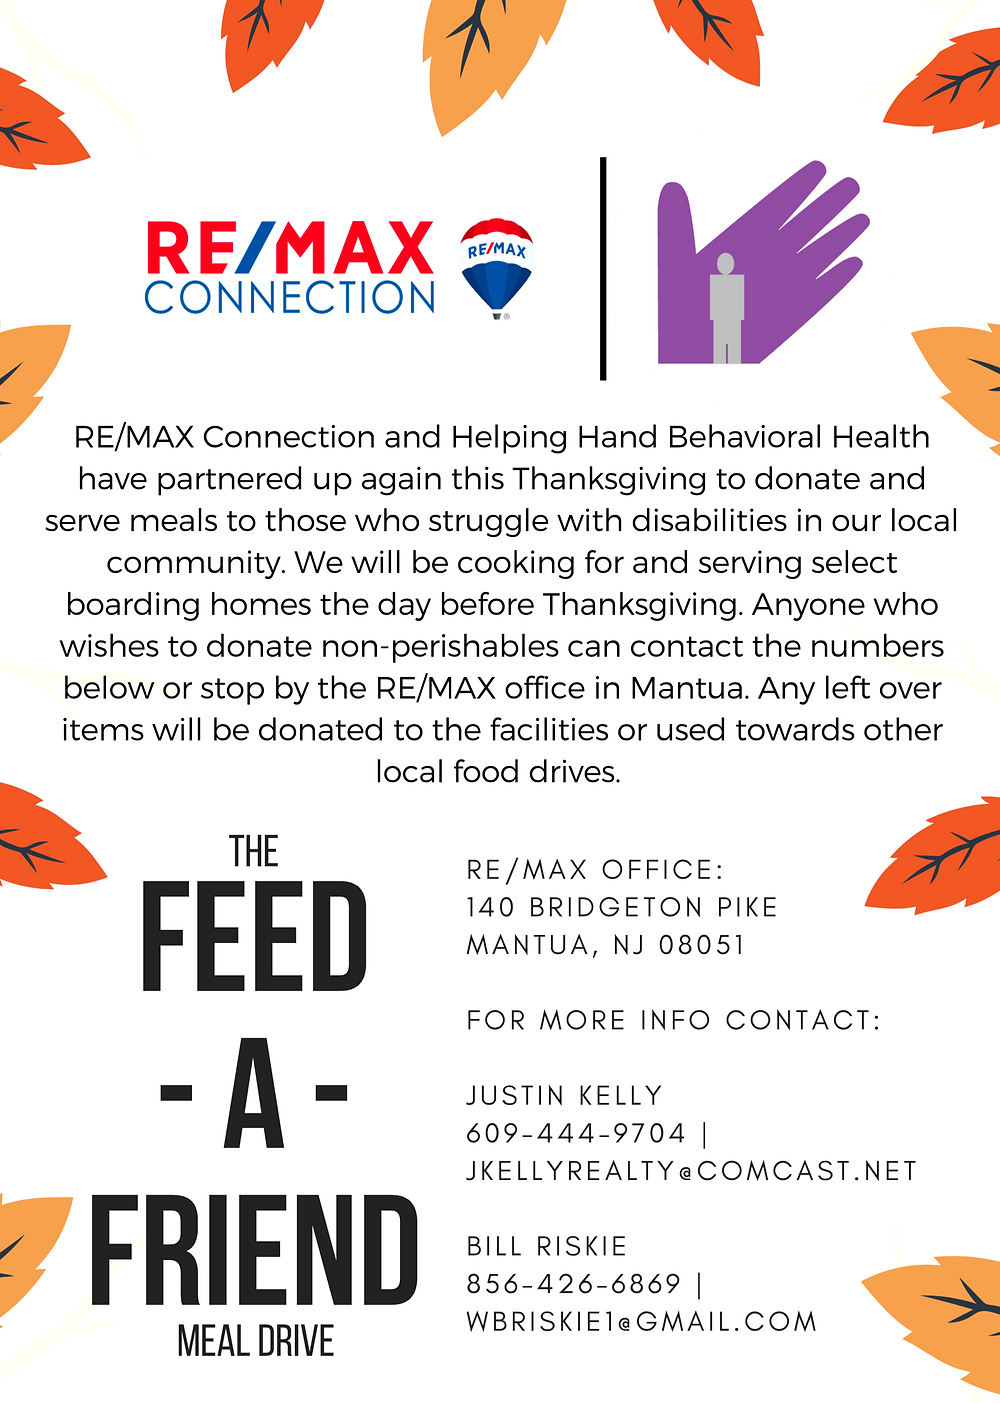 Feed-A-Friend Meal Drive